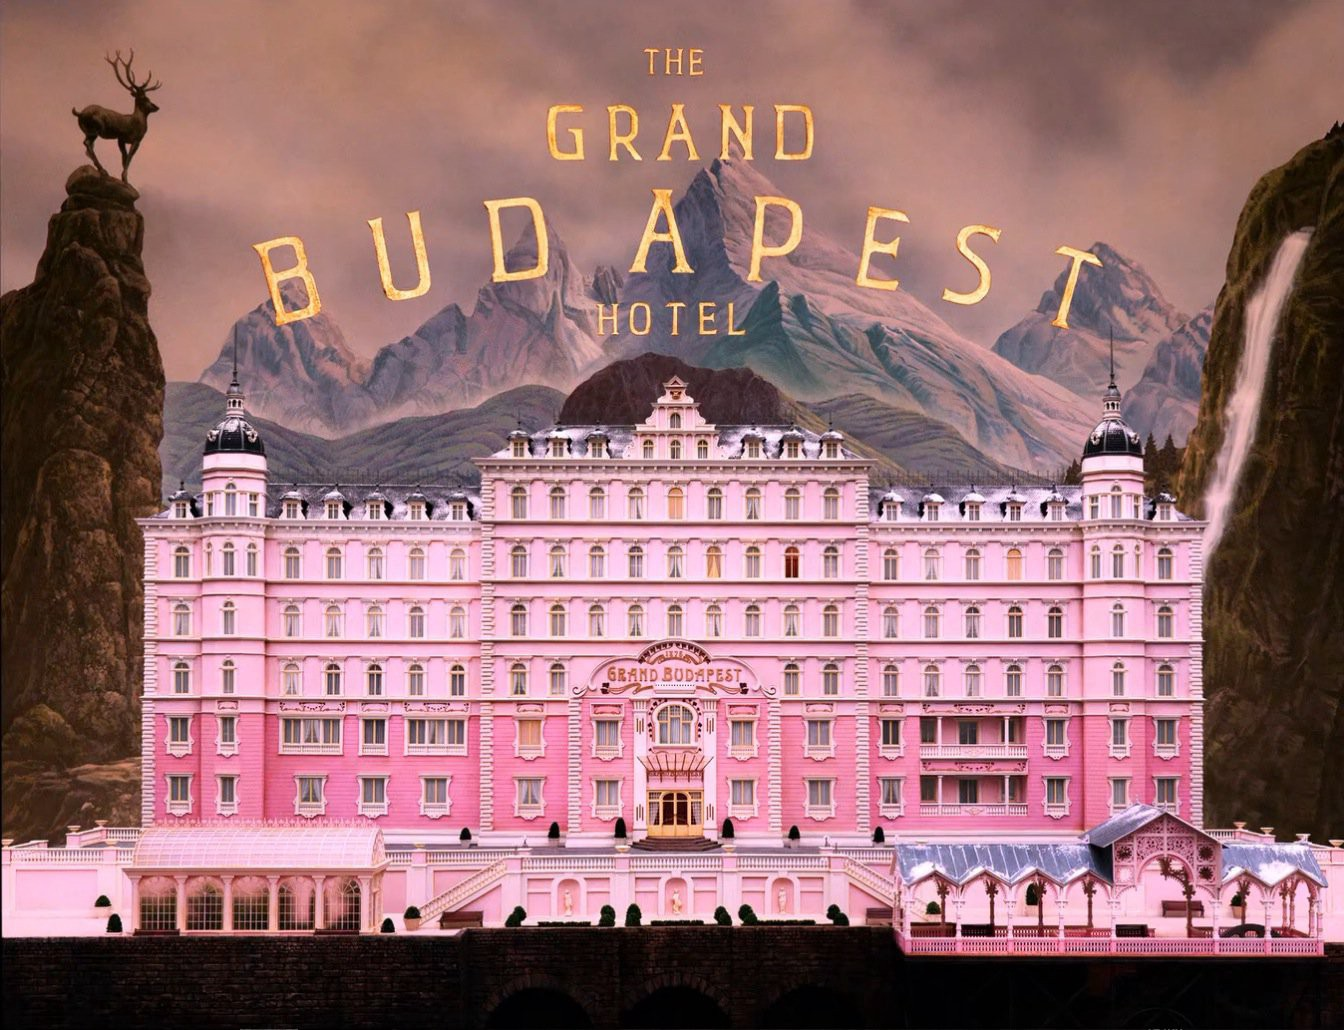 FILMES] THE GRAND BUDAPEST HOTEL: Um fragmento de contra-crítica de arte |  by Marcelo Hilsdorf Marotta | Medium